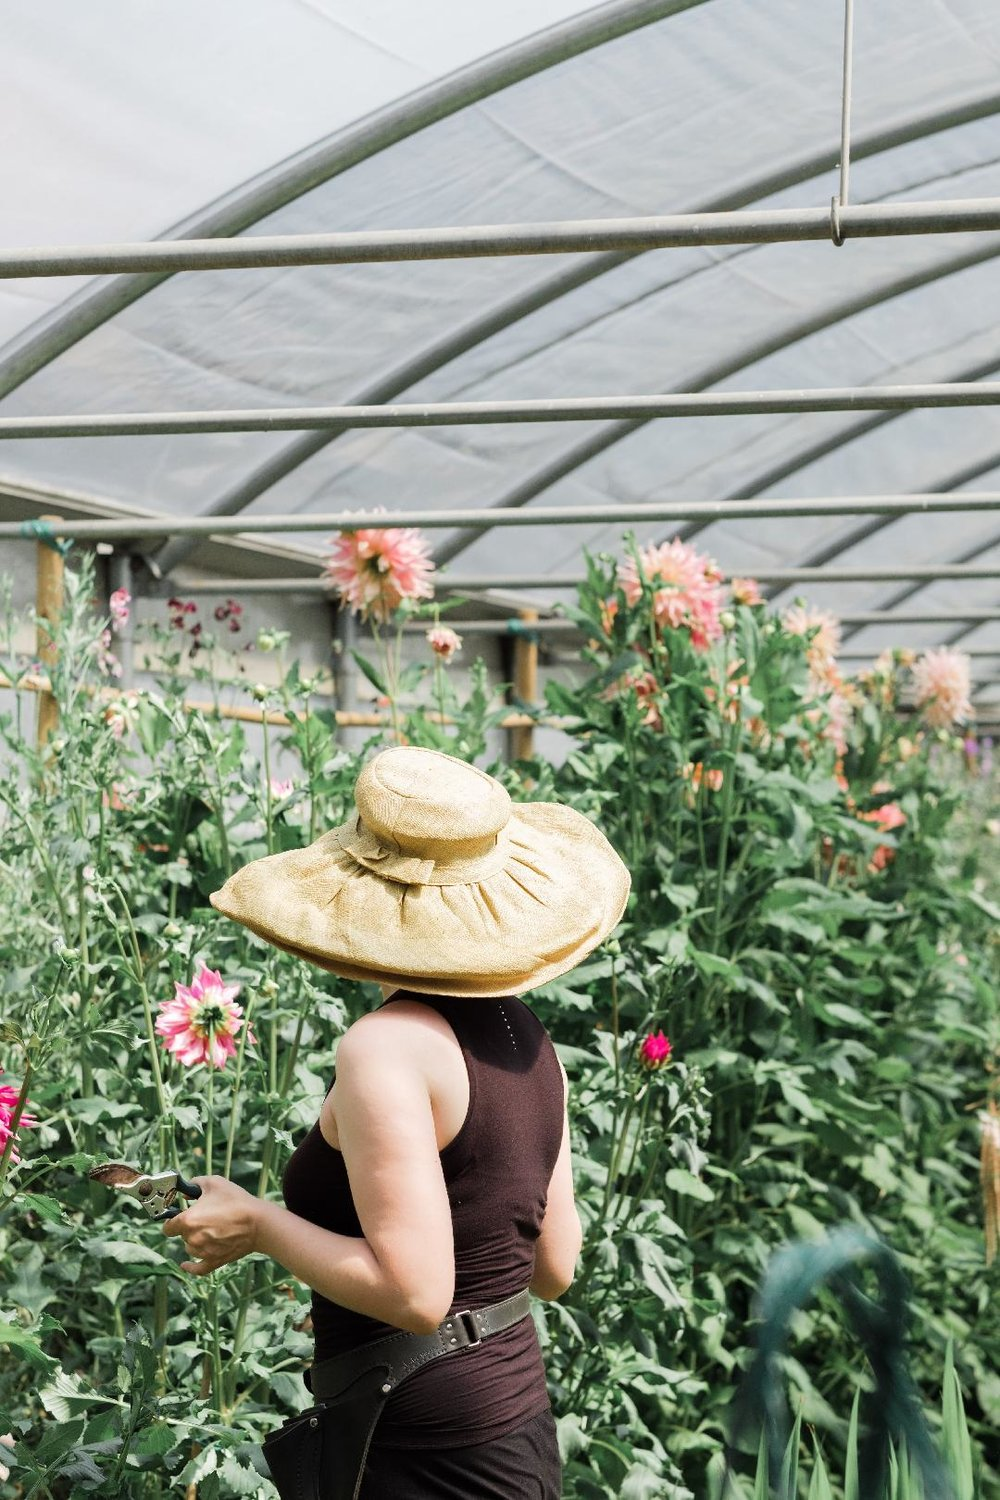 Olga is a keen supporter of the seasonal Slow Flower movement and grows a wide variety of unusual, organic flowers at her nursery